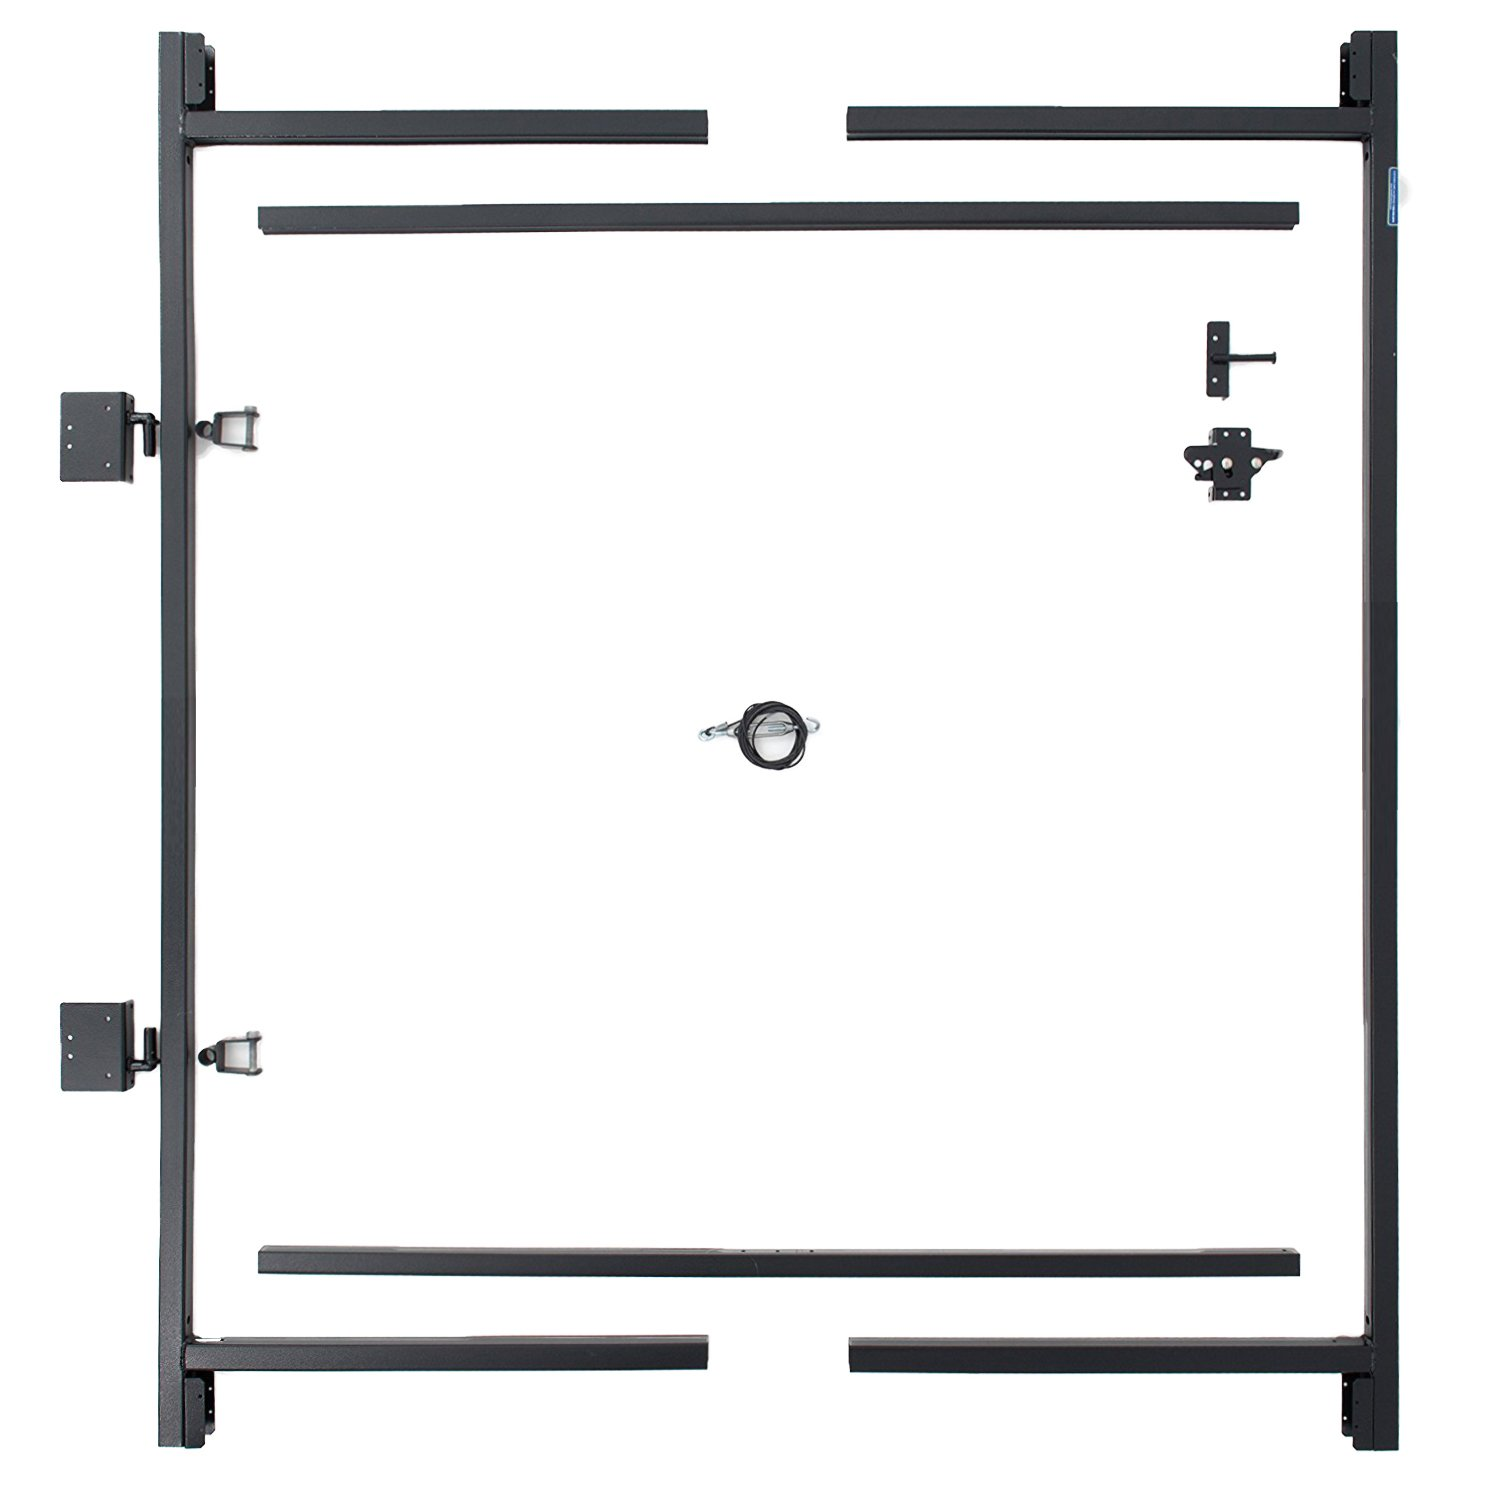 "Adjust-A-Gate Steel Frame Gate Building Kit (60""-96"" wide openings, 5' - 6' high fence)"